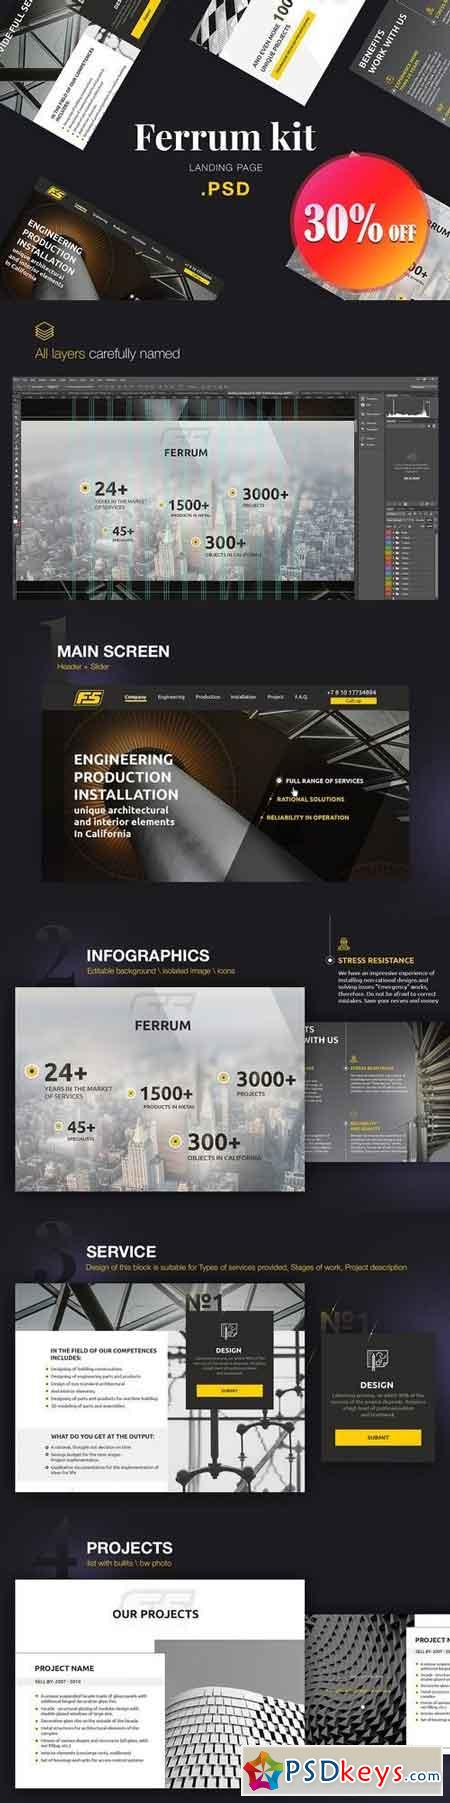 Ferrum Kit for Industry Landing Page 1455196